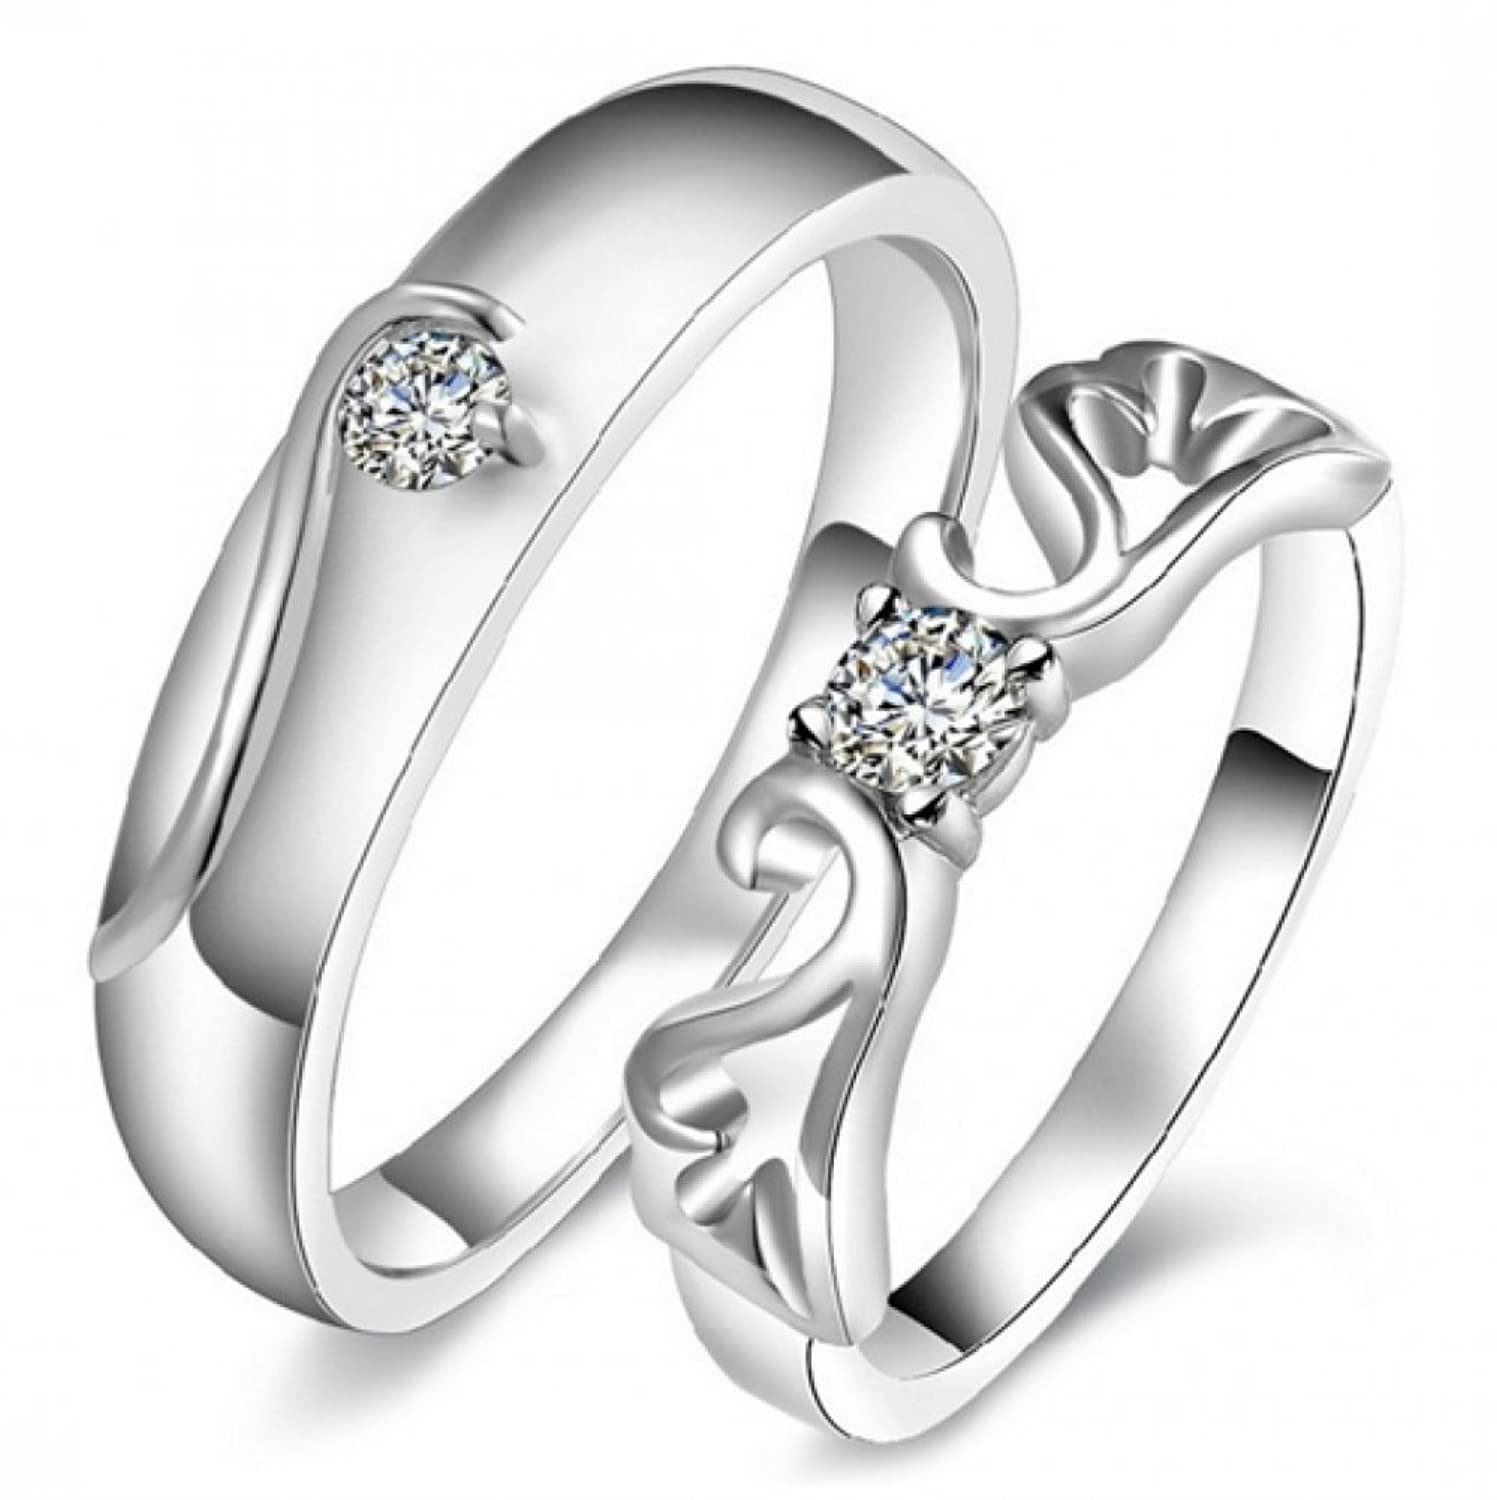 rings bluestone love com morse ring code the pics